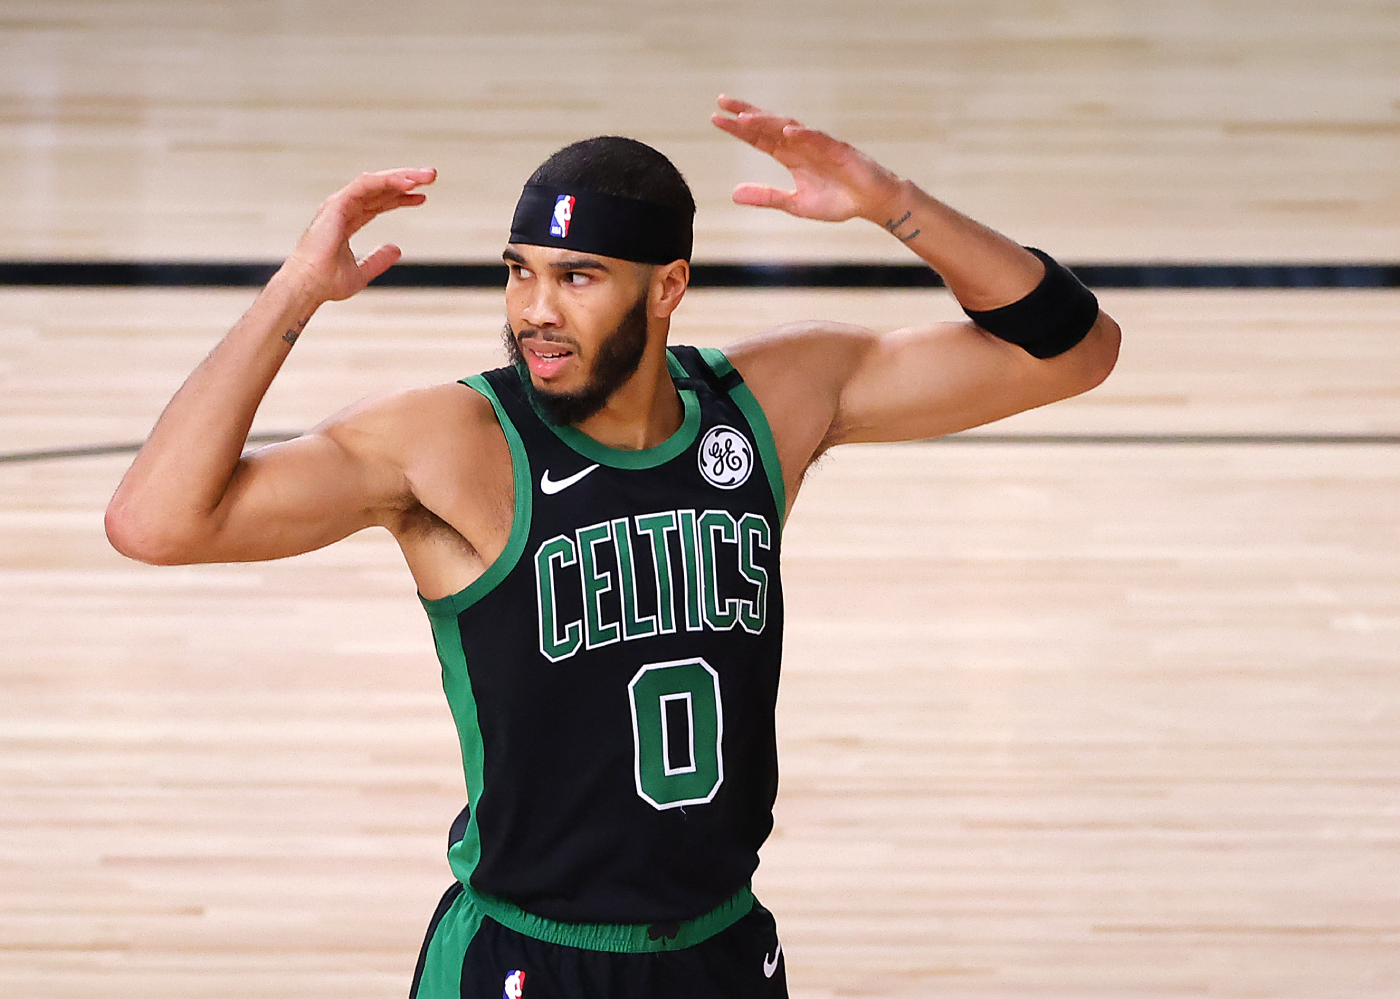 Jayson Tatum had an excellent season with the Boston Celtics. However, before losing to the Heat he made a questionable decision.